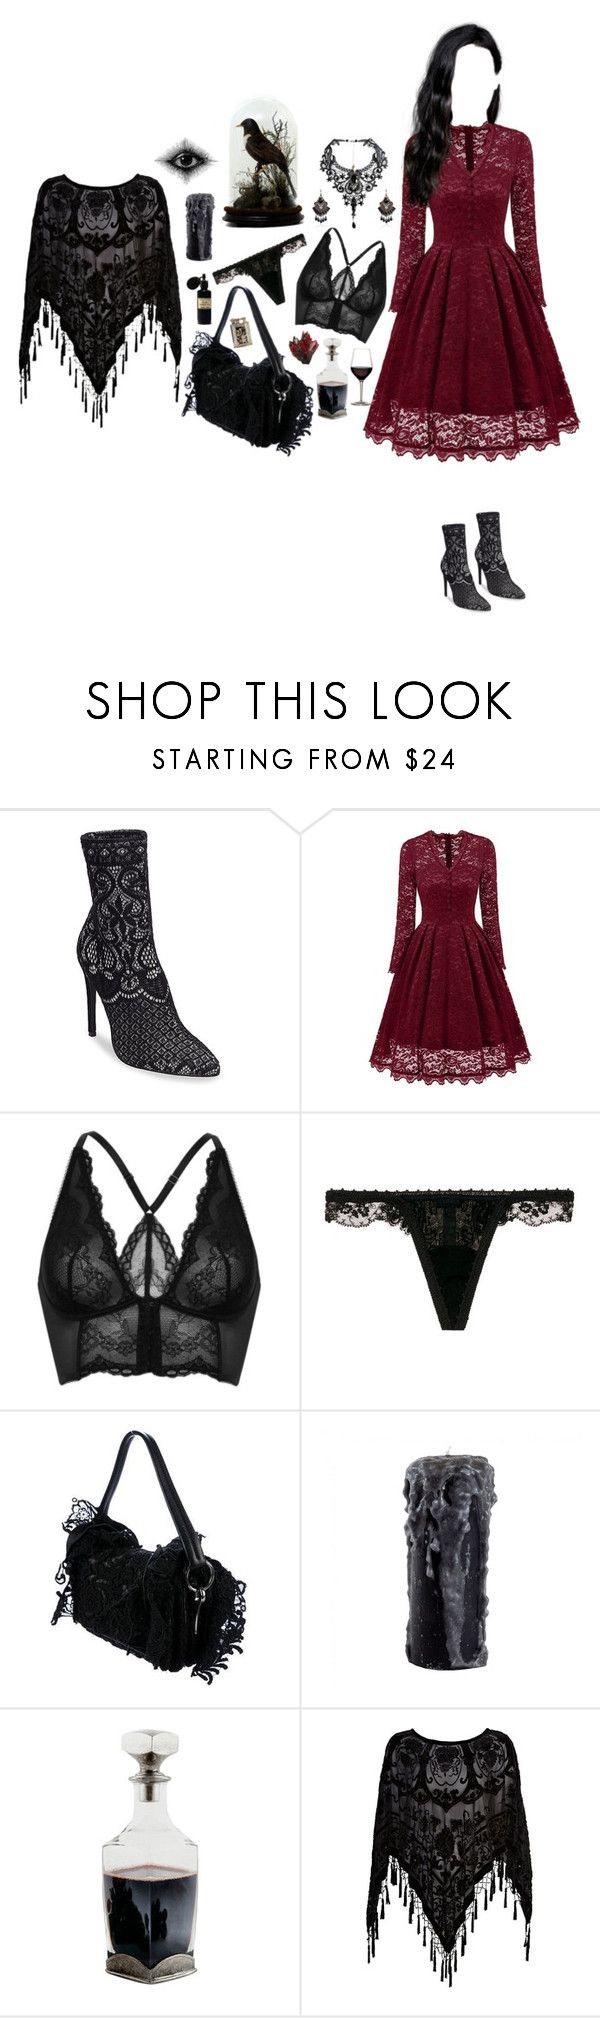 """""""Lace"""" by mel0ody ❤ liked on Polyvore featuring Steve Madden, Gossard, La Perla, Prada, Mad et Len and River Island"""